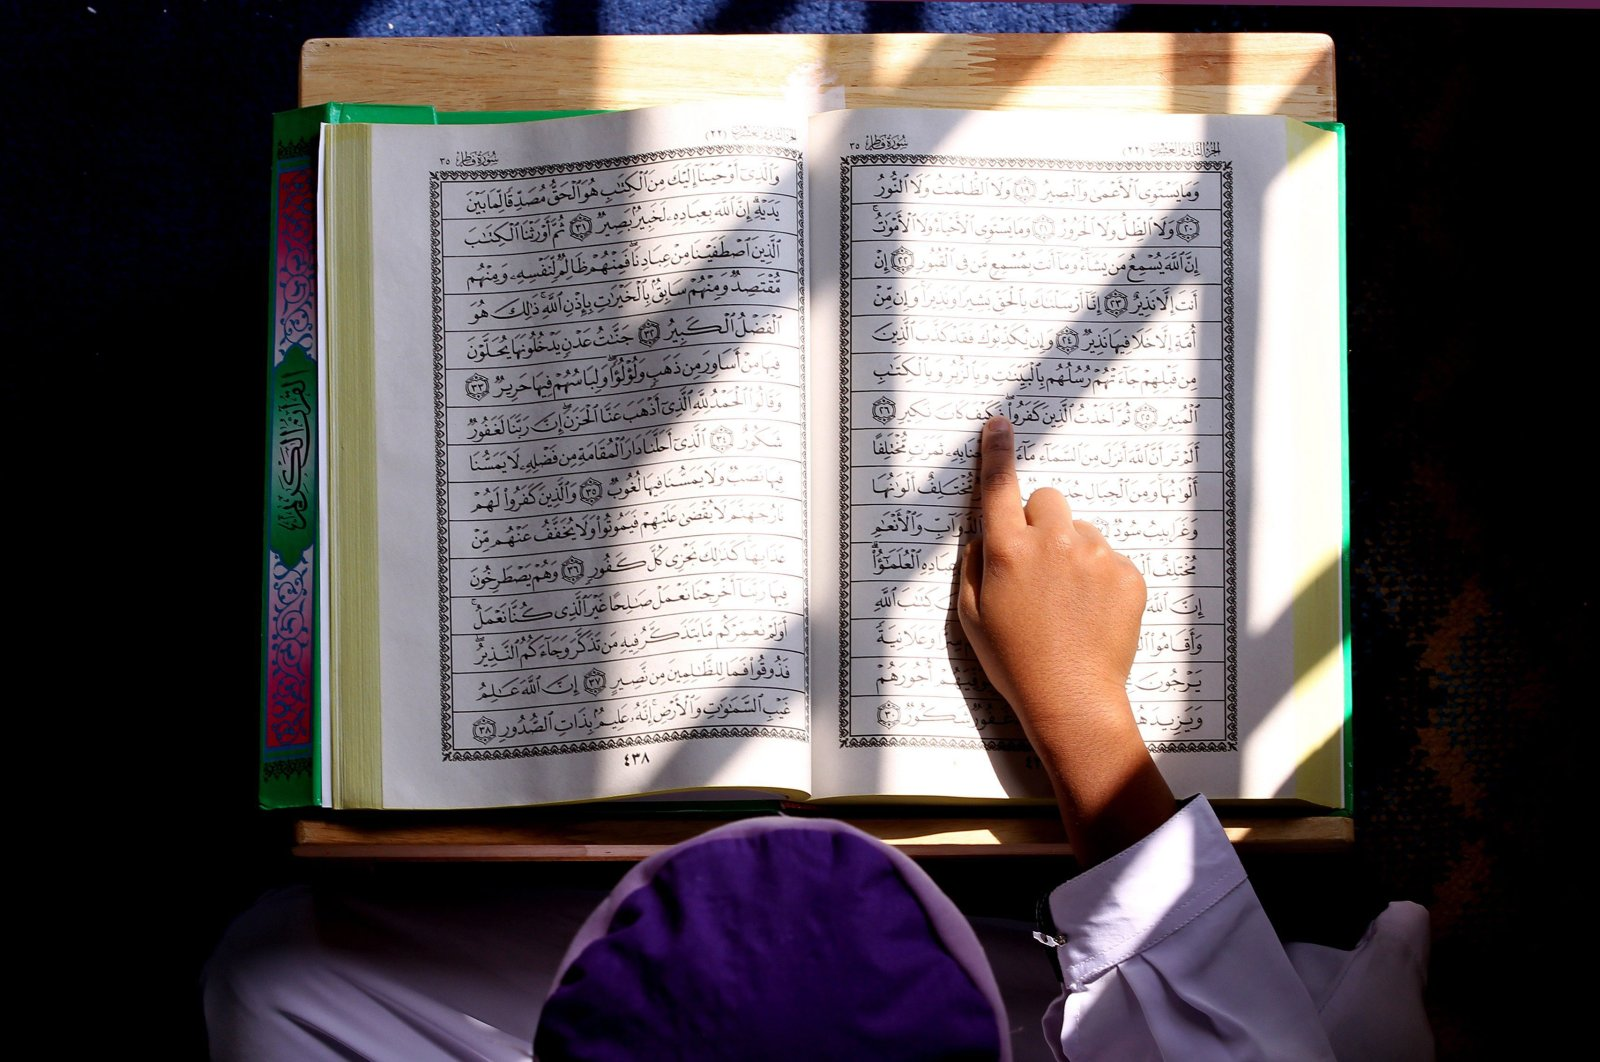 A Malaysian Muslim boy reads from the Quran inside a mosque a day before the Muslim fasting month of Ramadan begins in Kuala Lumpur on July 31, 2011. (AFP Photo)